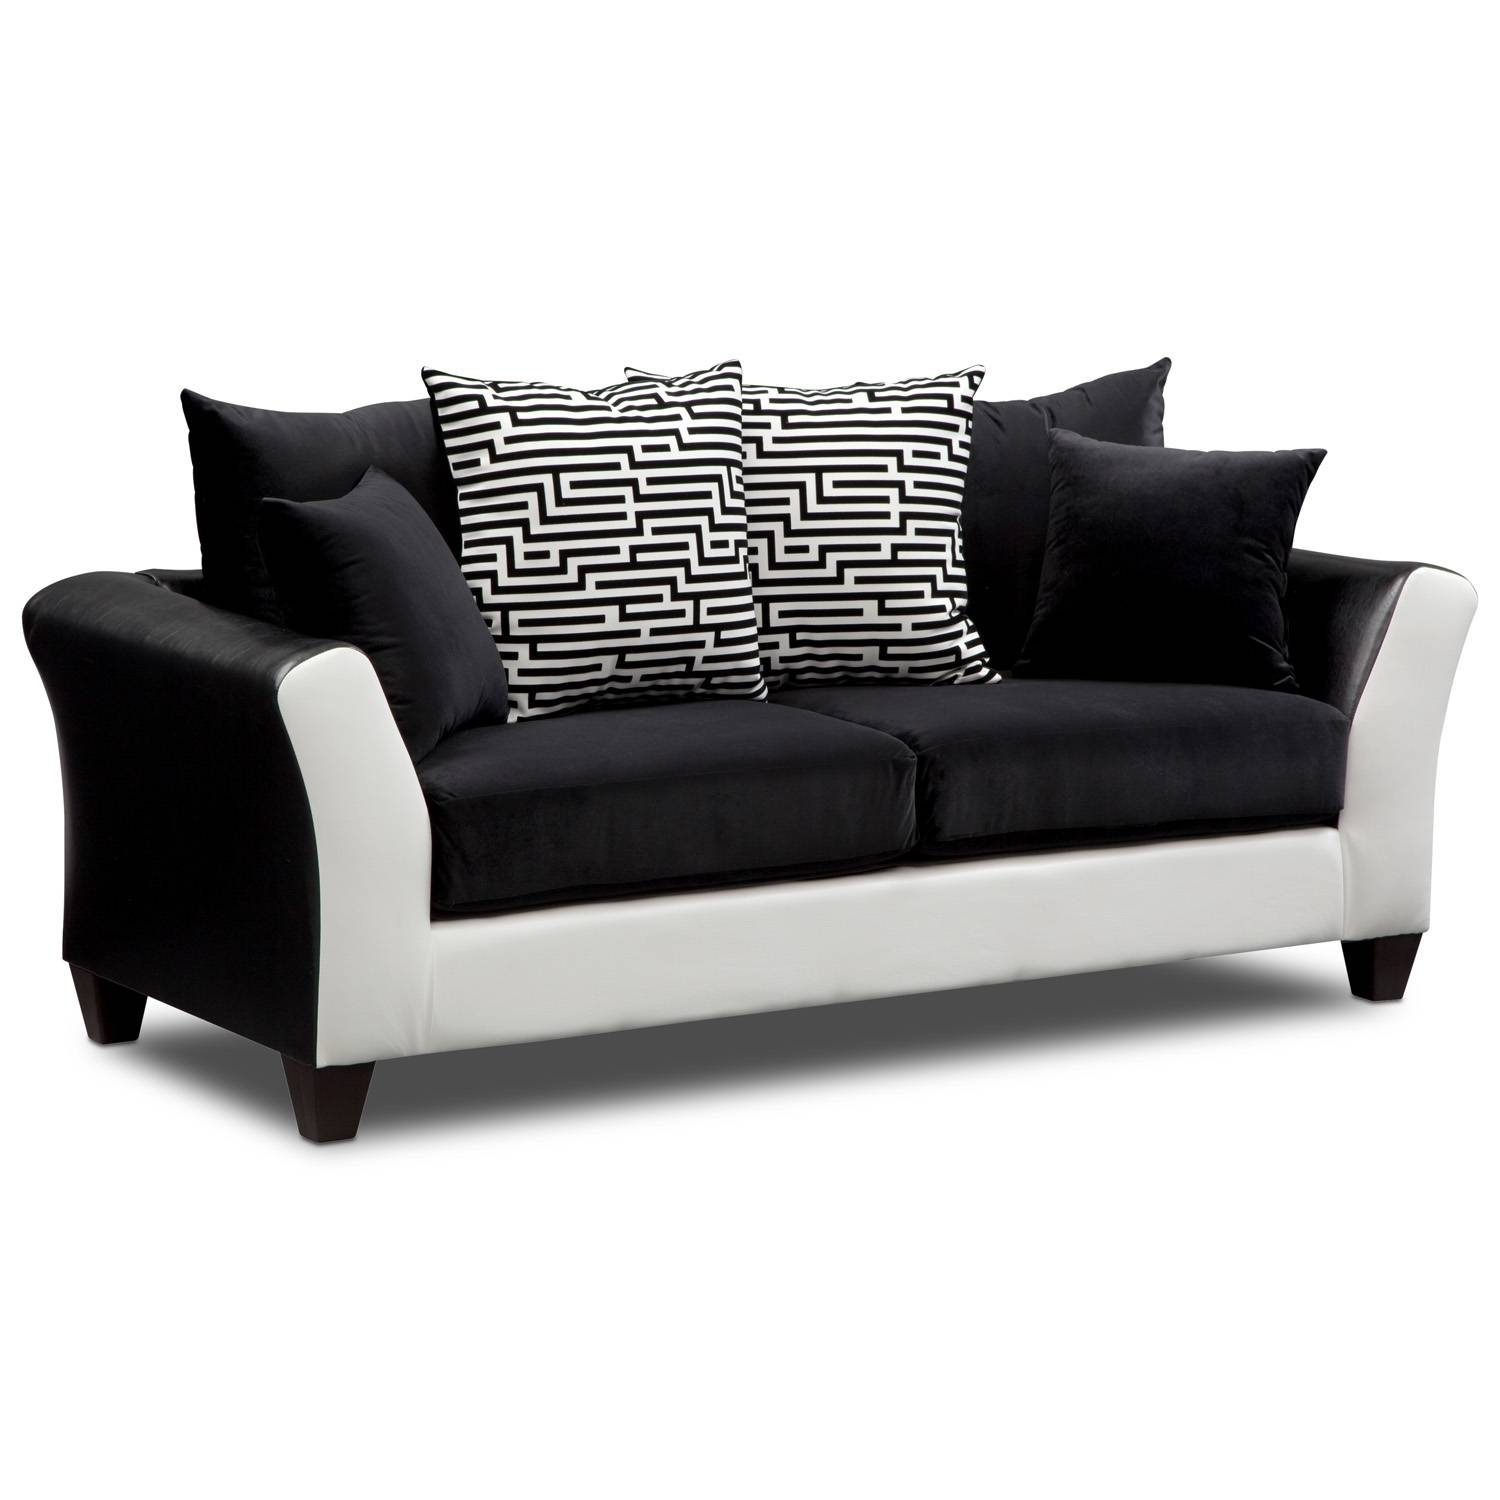 Value City Sofas Value City Furniture Sofas Value City Sofas On Sale Home Design Ideas And